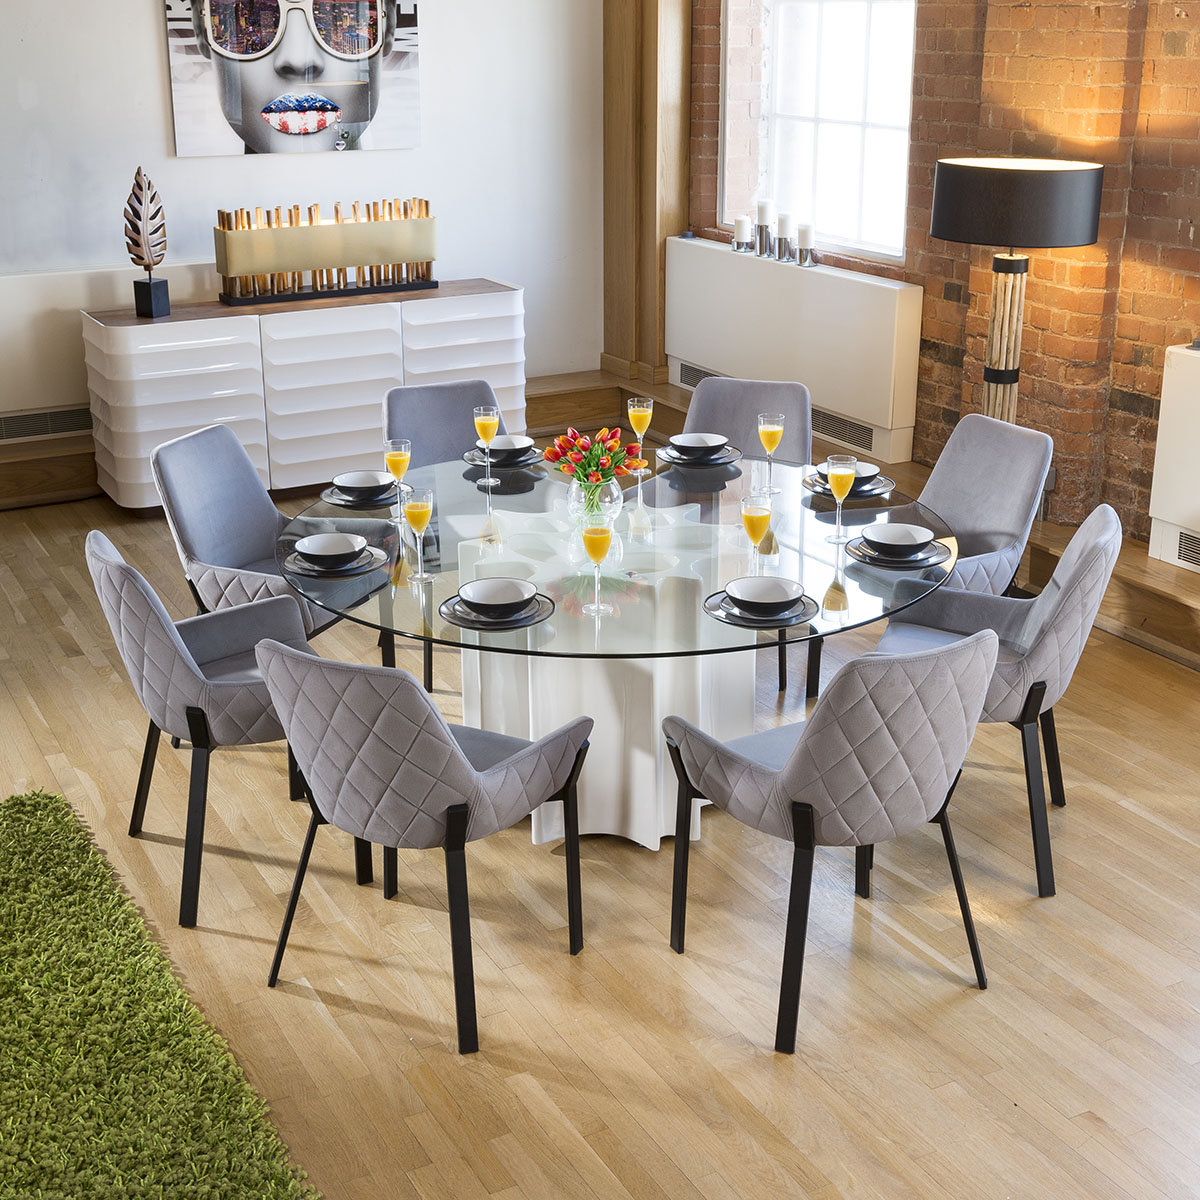 Details About Round Gl Top White Gloss Dining Table 8 Light Grey Carver Chair